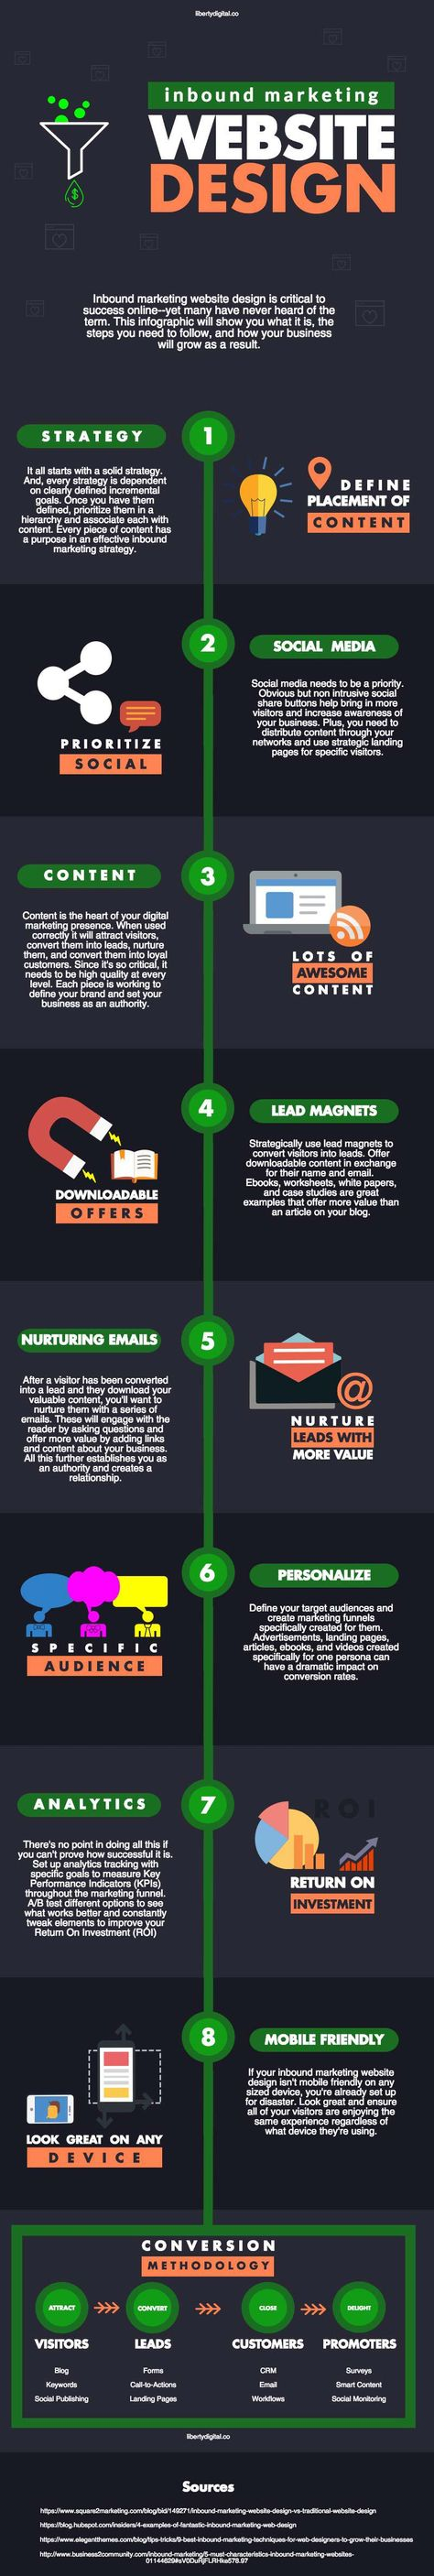 What Is Inbound Marketing Web Design & Why Your Business Needs It [Infographic] | Liberty Digital